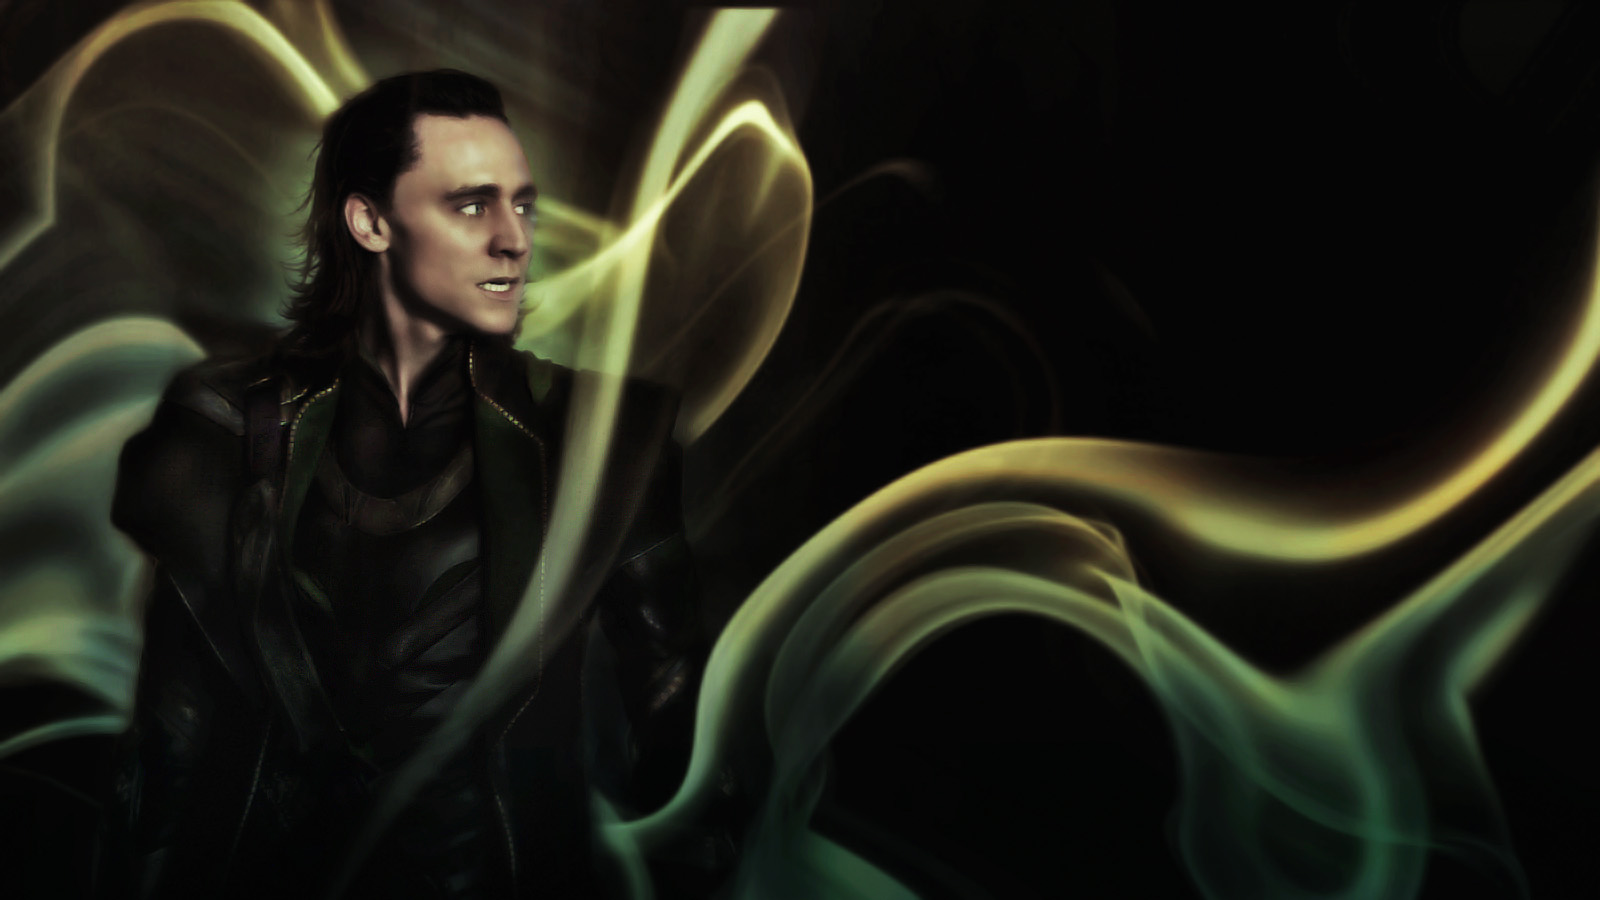 loki background for tigger - photo #28